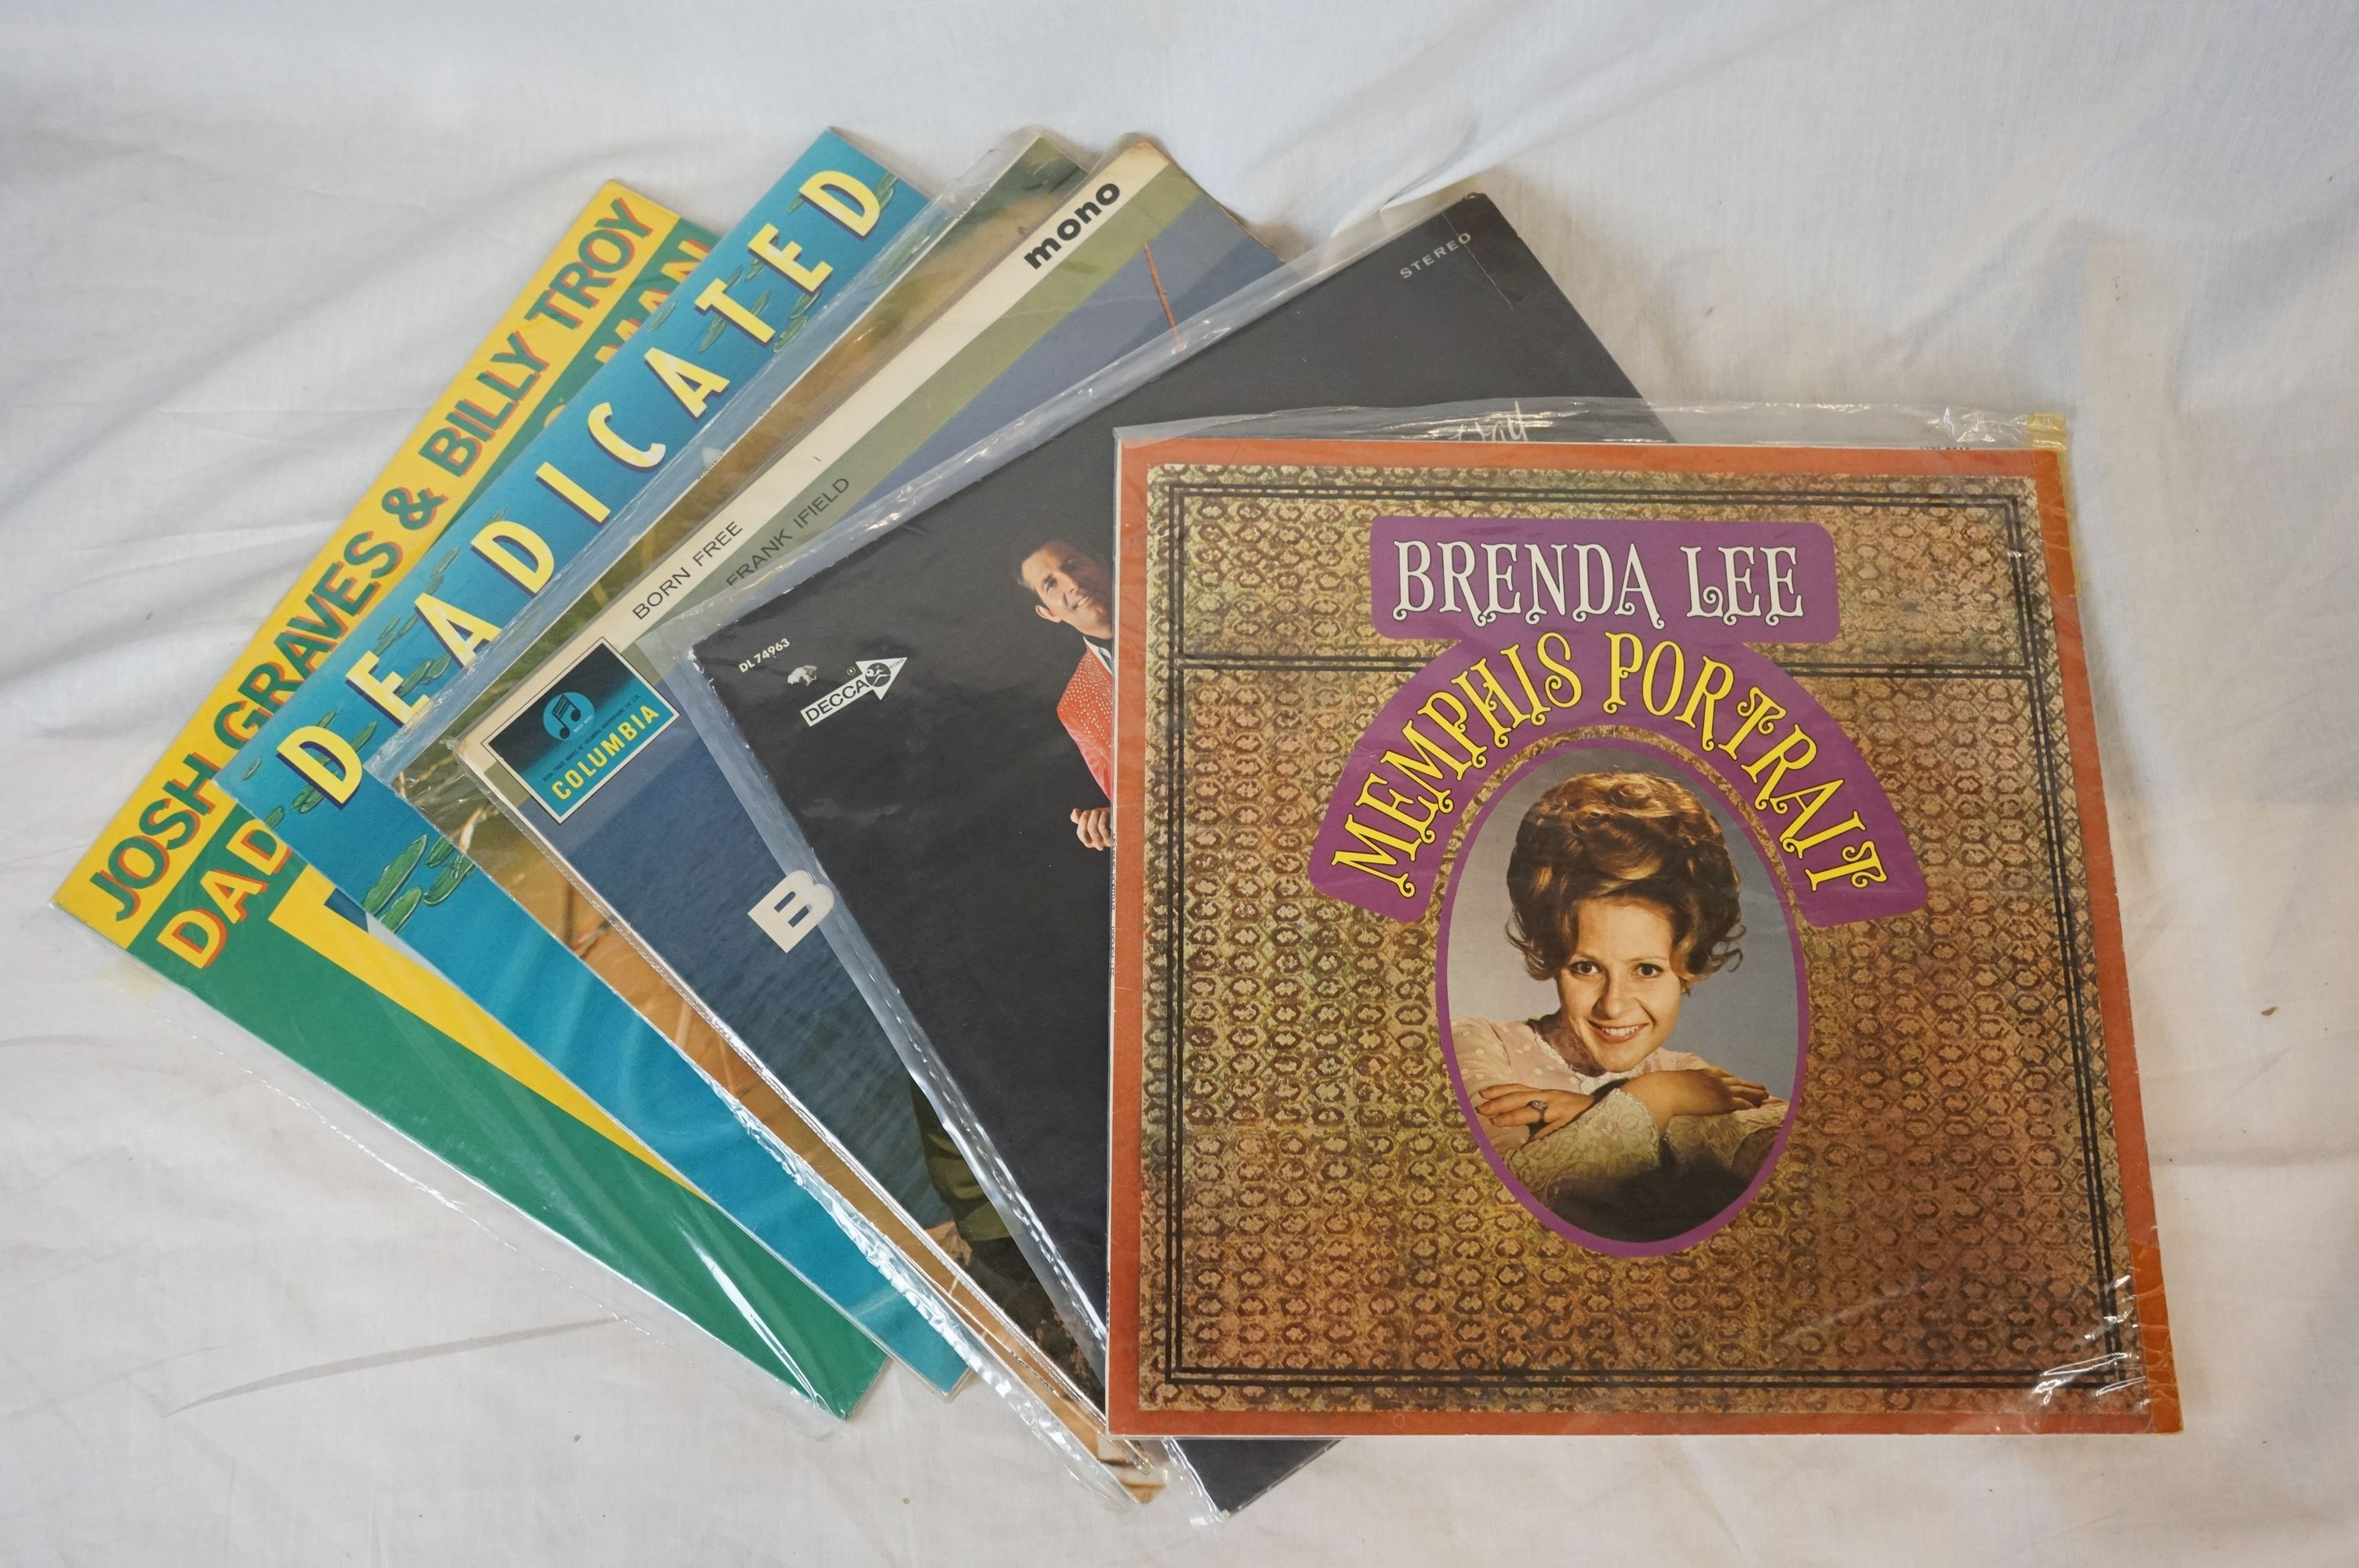 Vinyl - Over 100 LP's spanning genres and decades including lots of country artists. Condition - Image 3 of 3